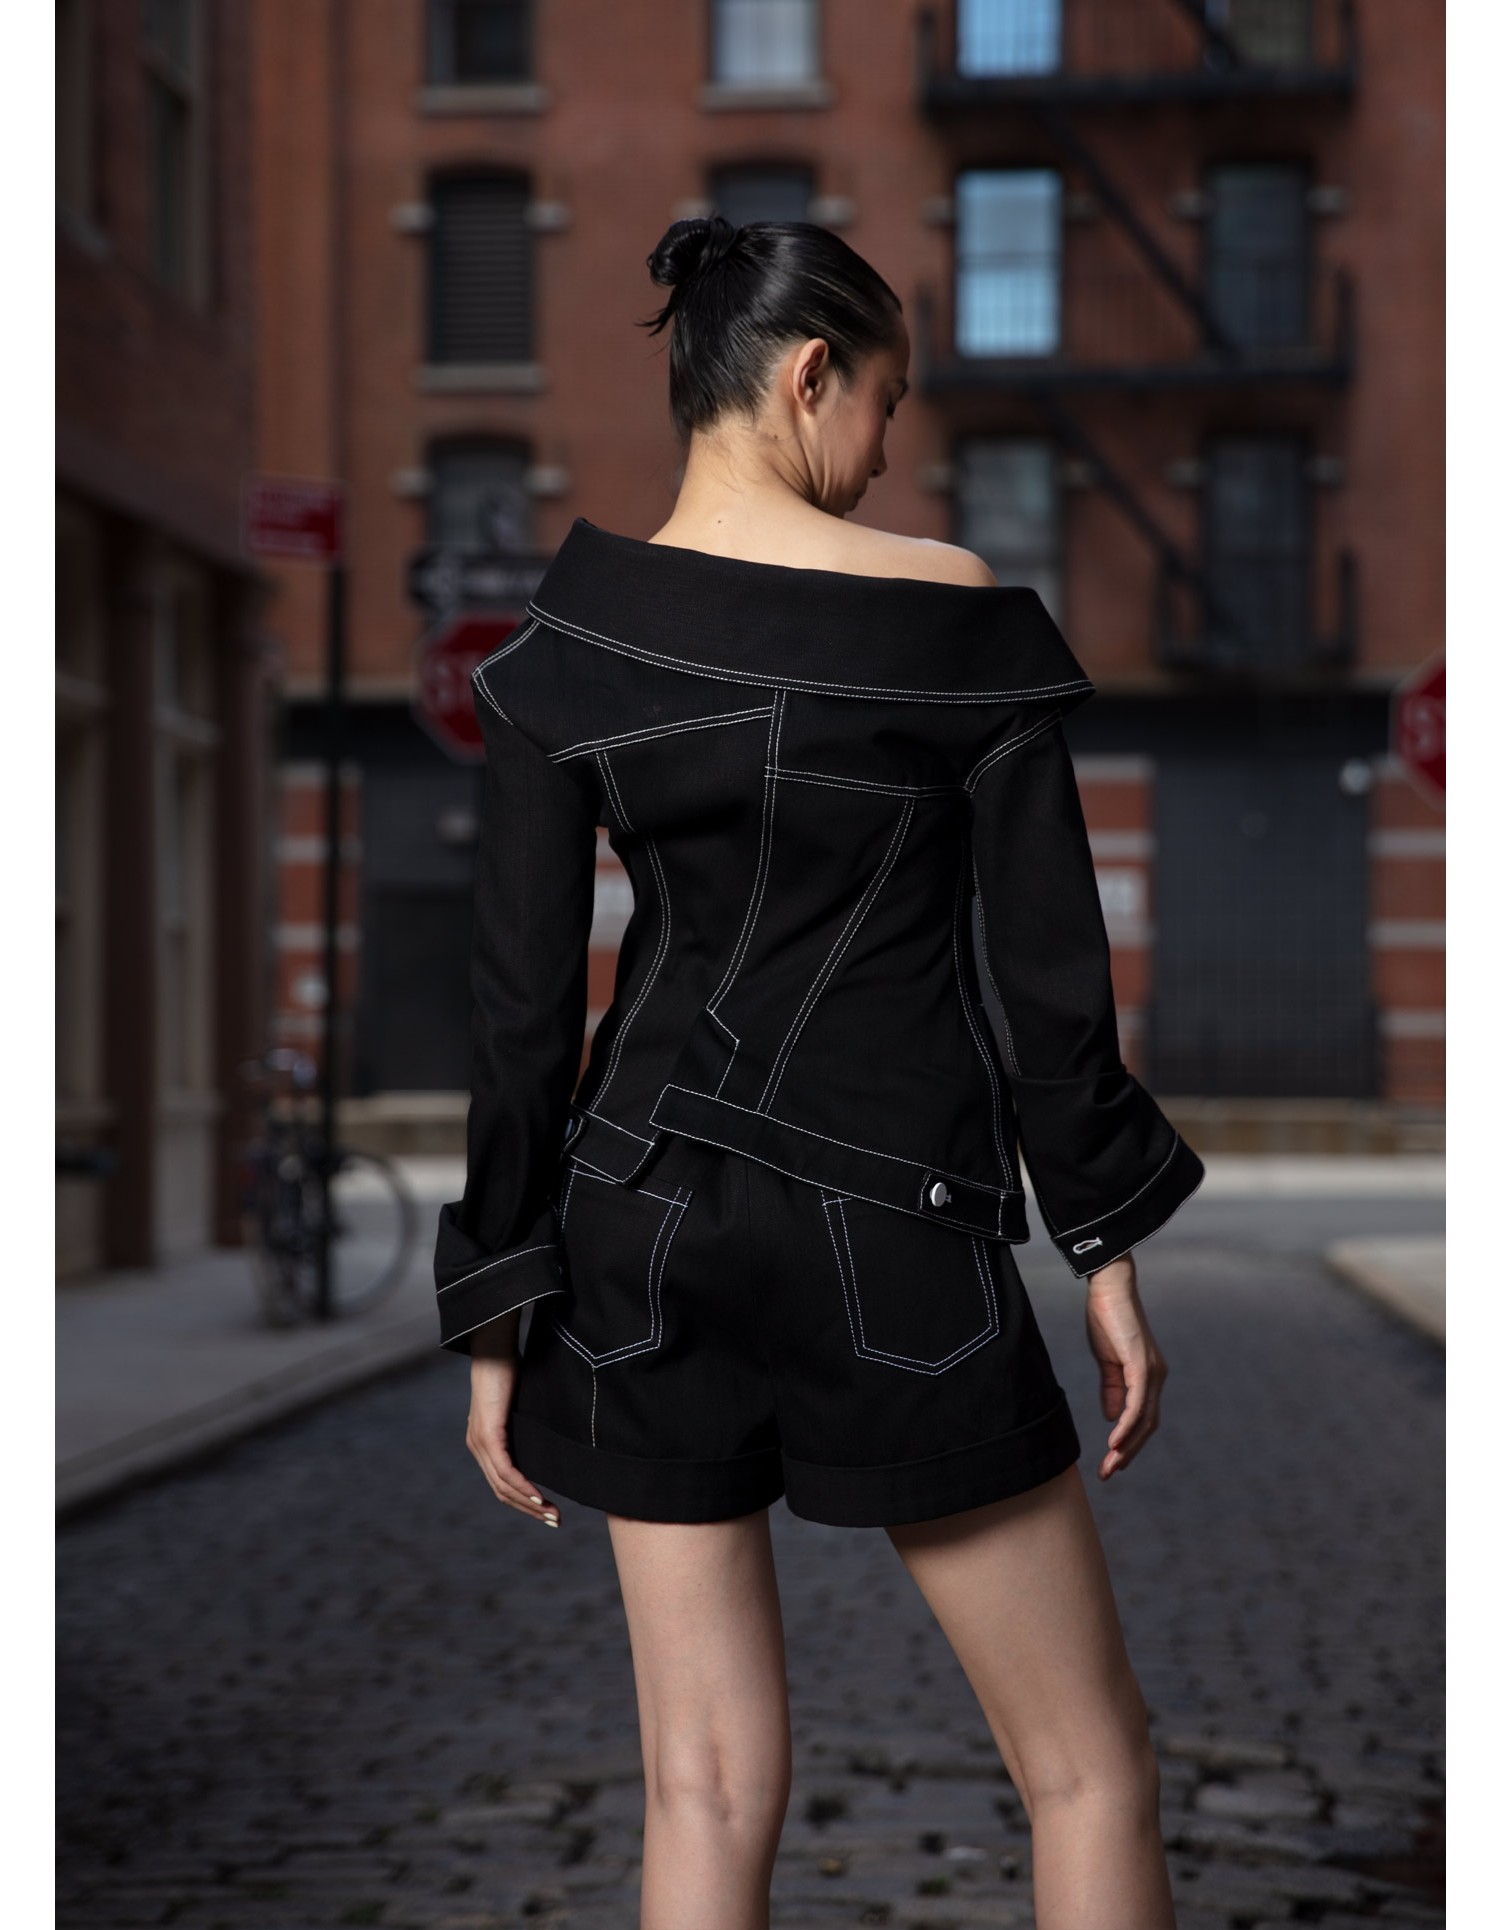 MONSE Crooked Denim Shorts in Black on Model Back View